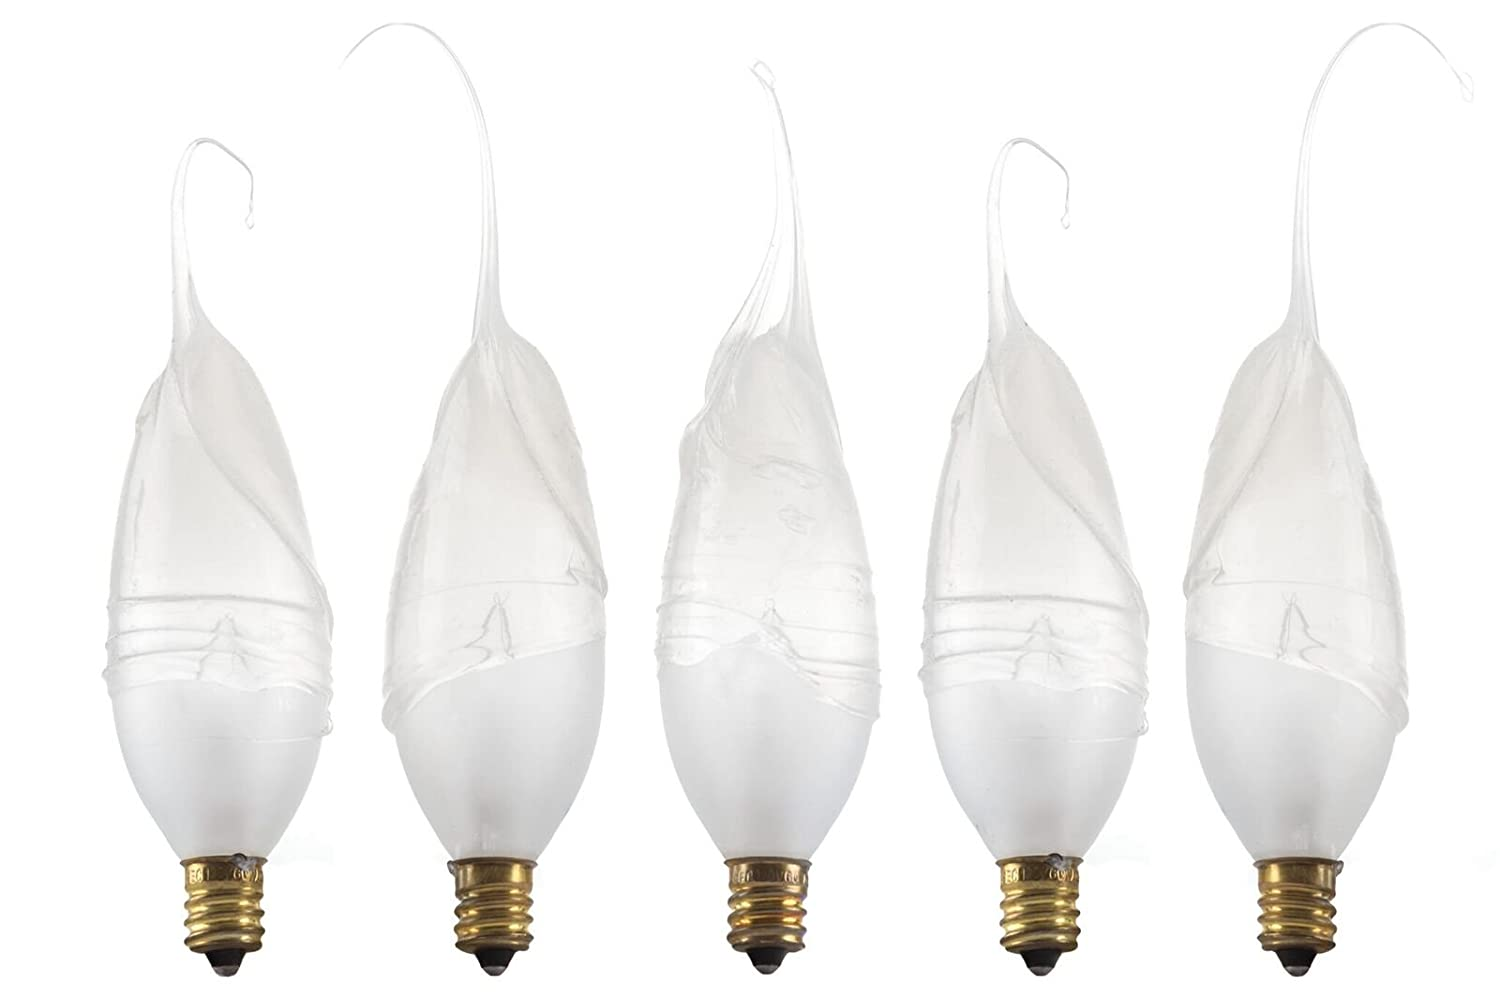 Wish Designs USA Silicone Dipped Hand Dipped Light Bulb 40 watt #40w20pk Frosted 20 bulb quantity